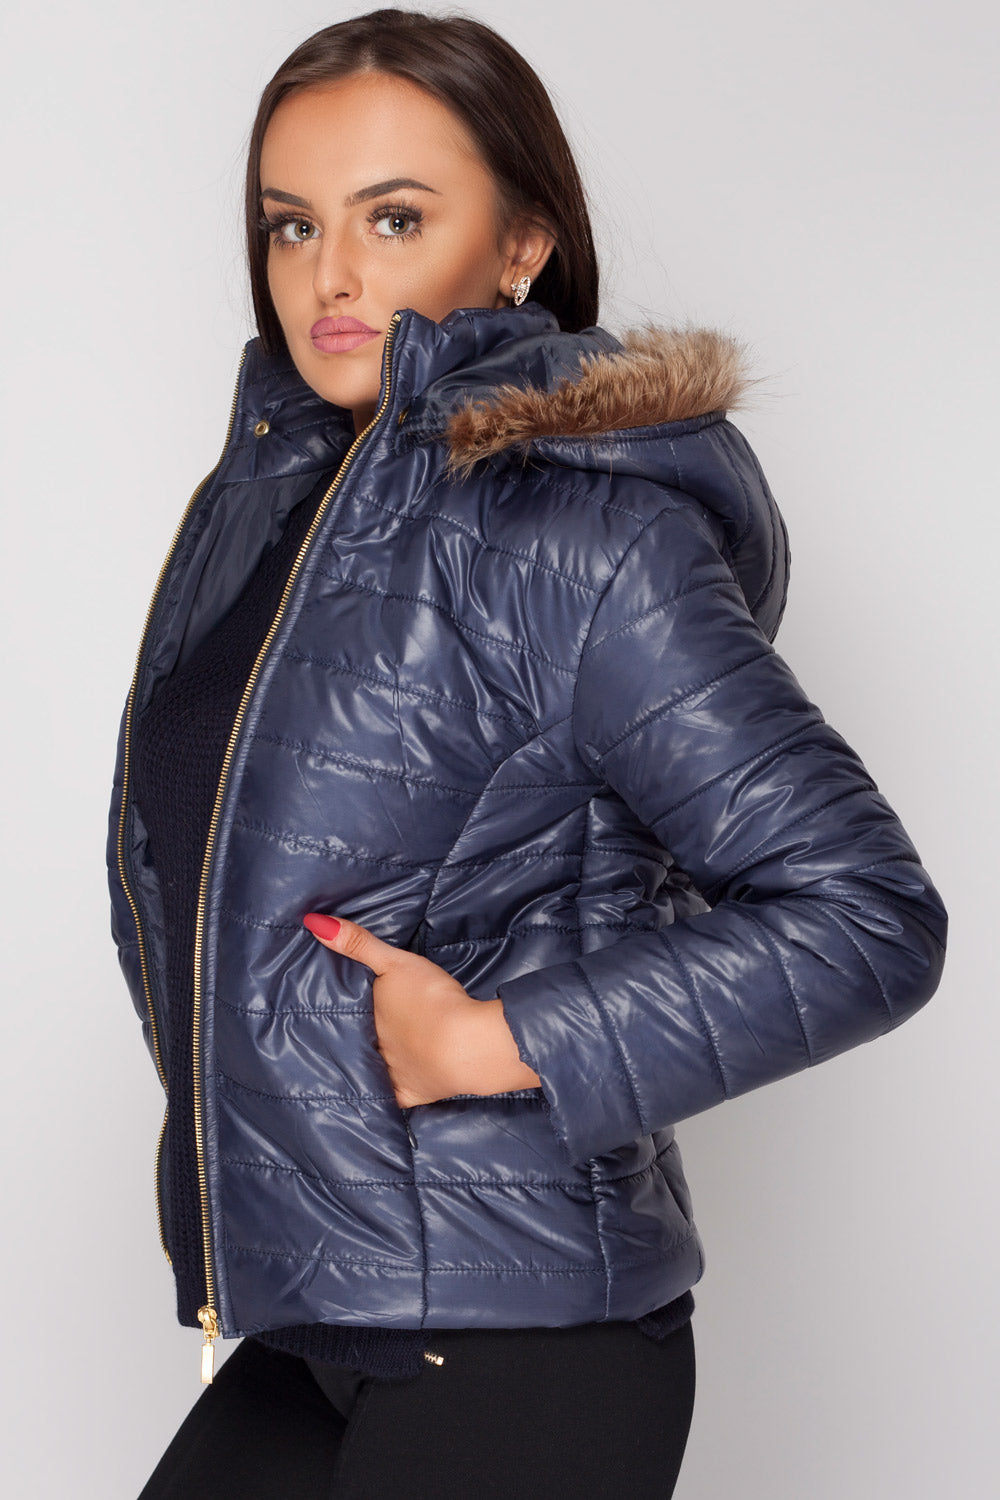 womens weatherproof jacket navy